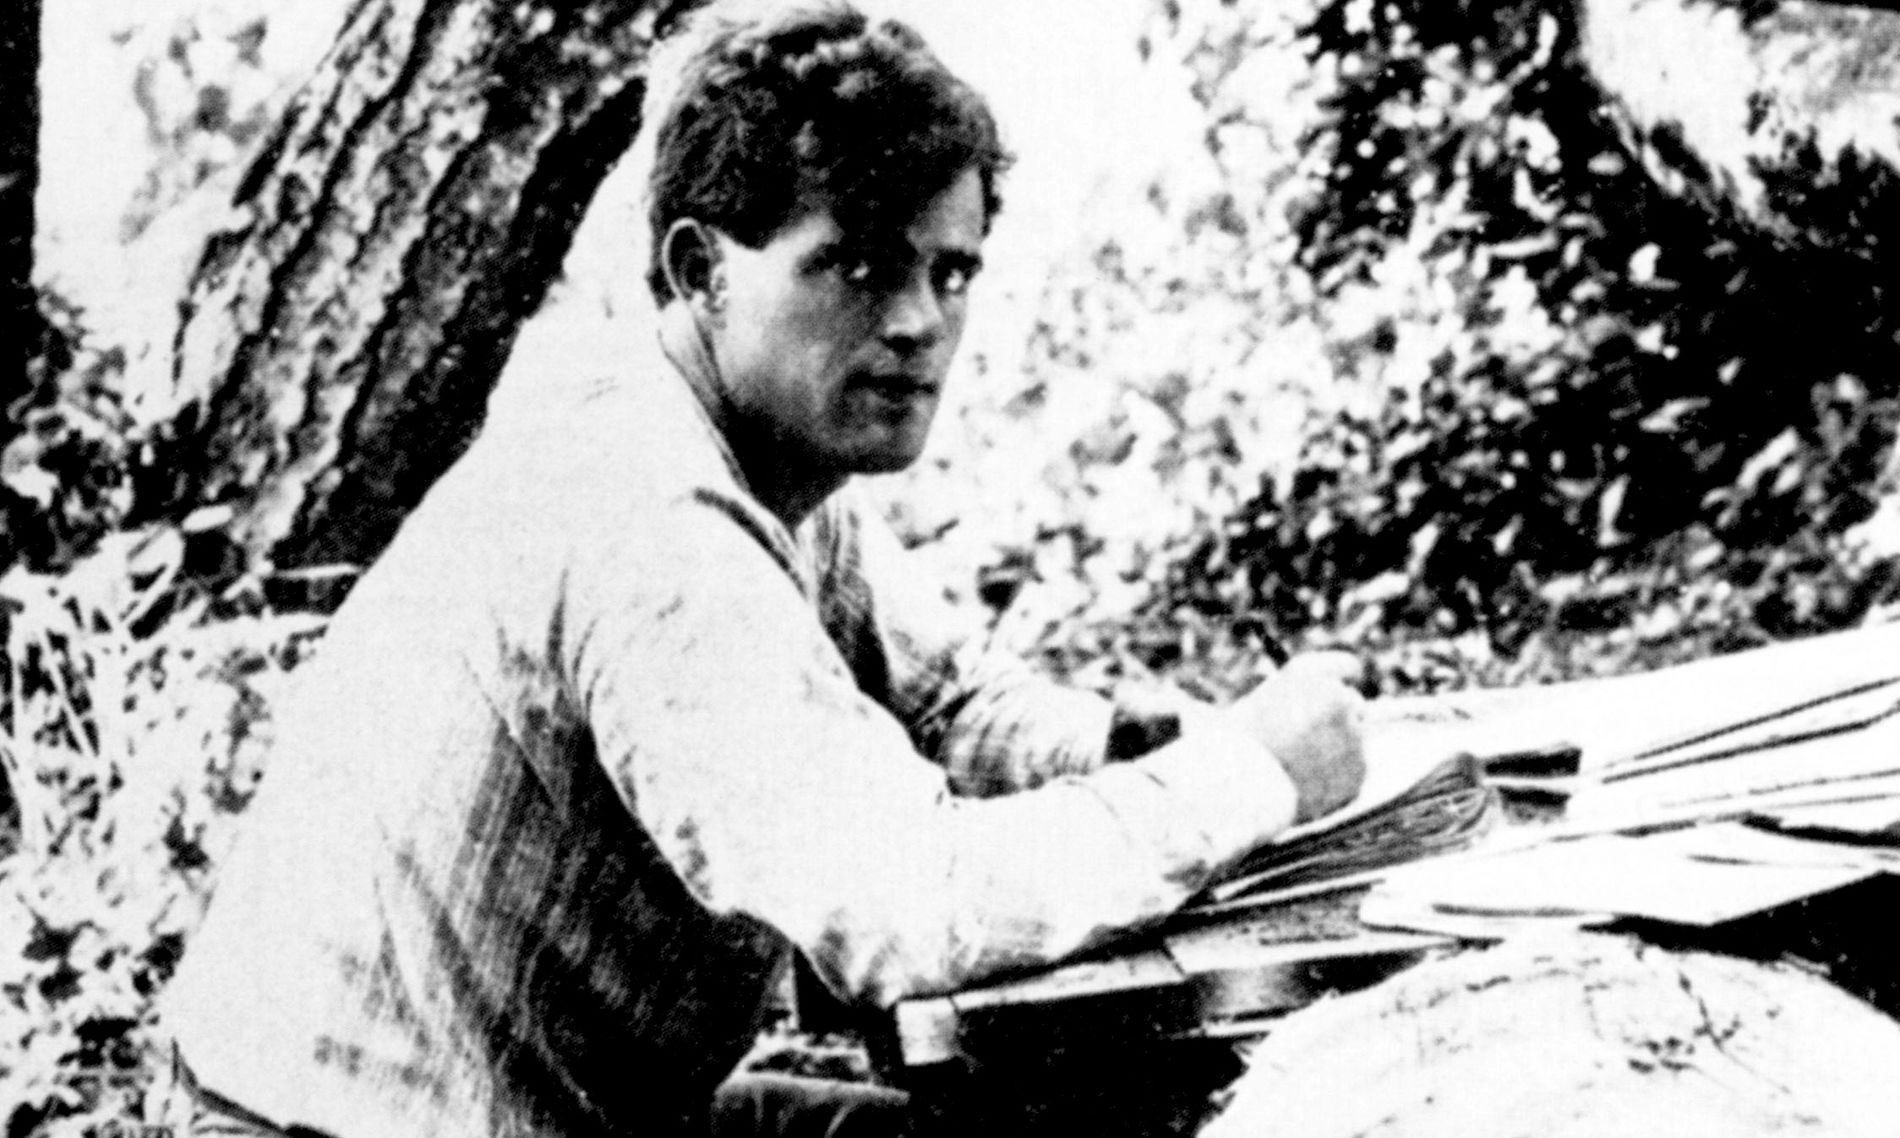 Jack London, California, 1905